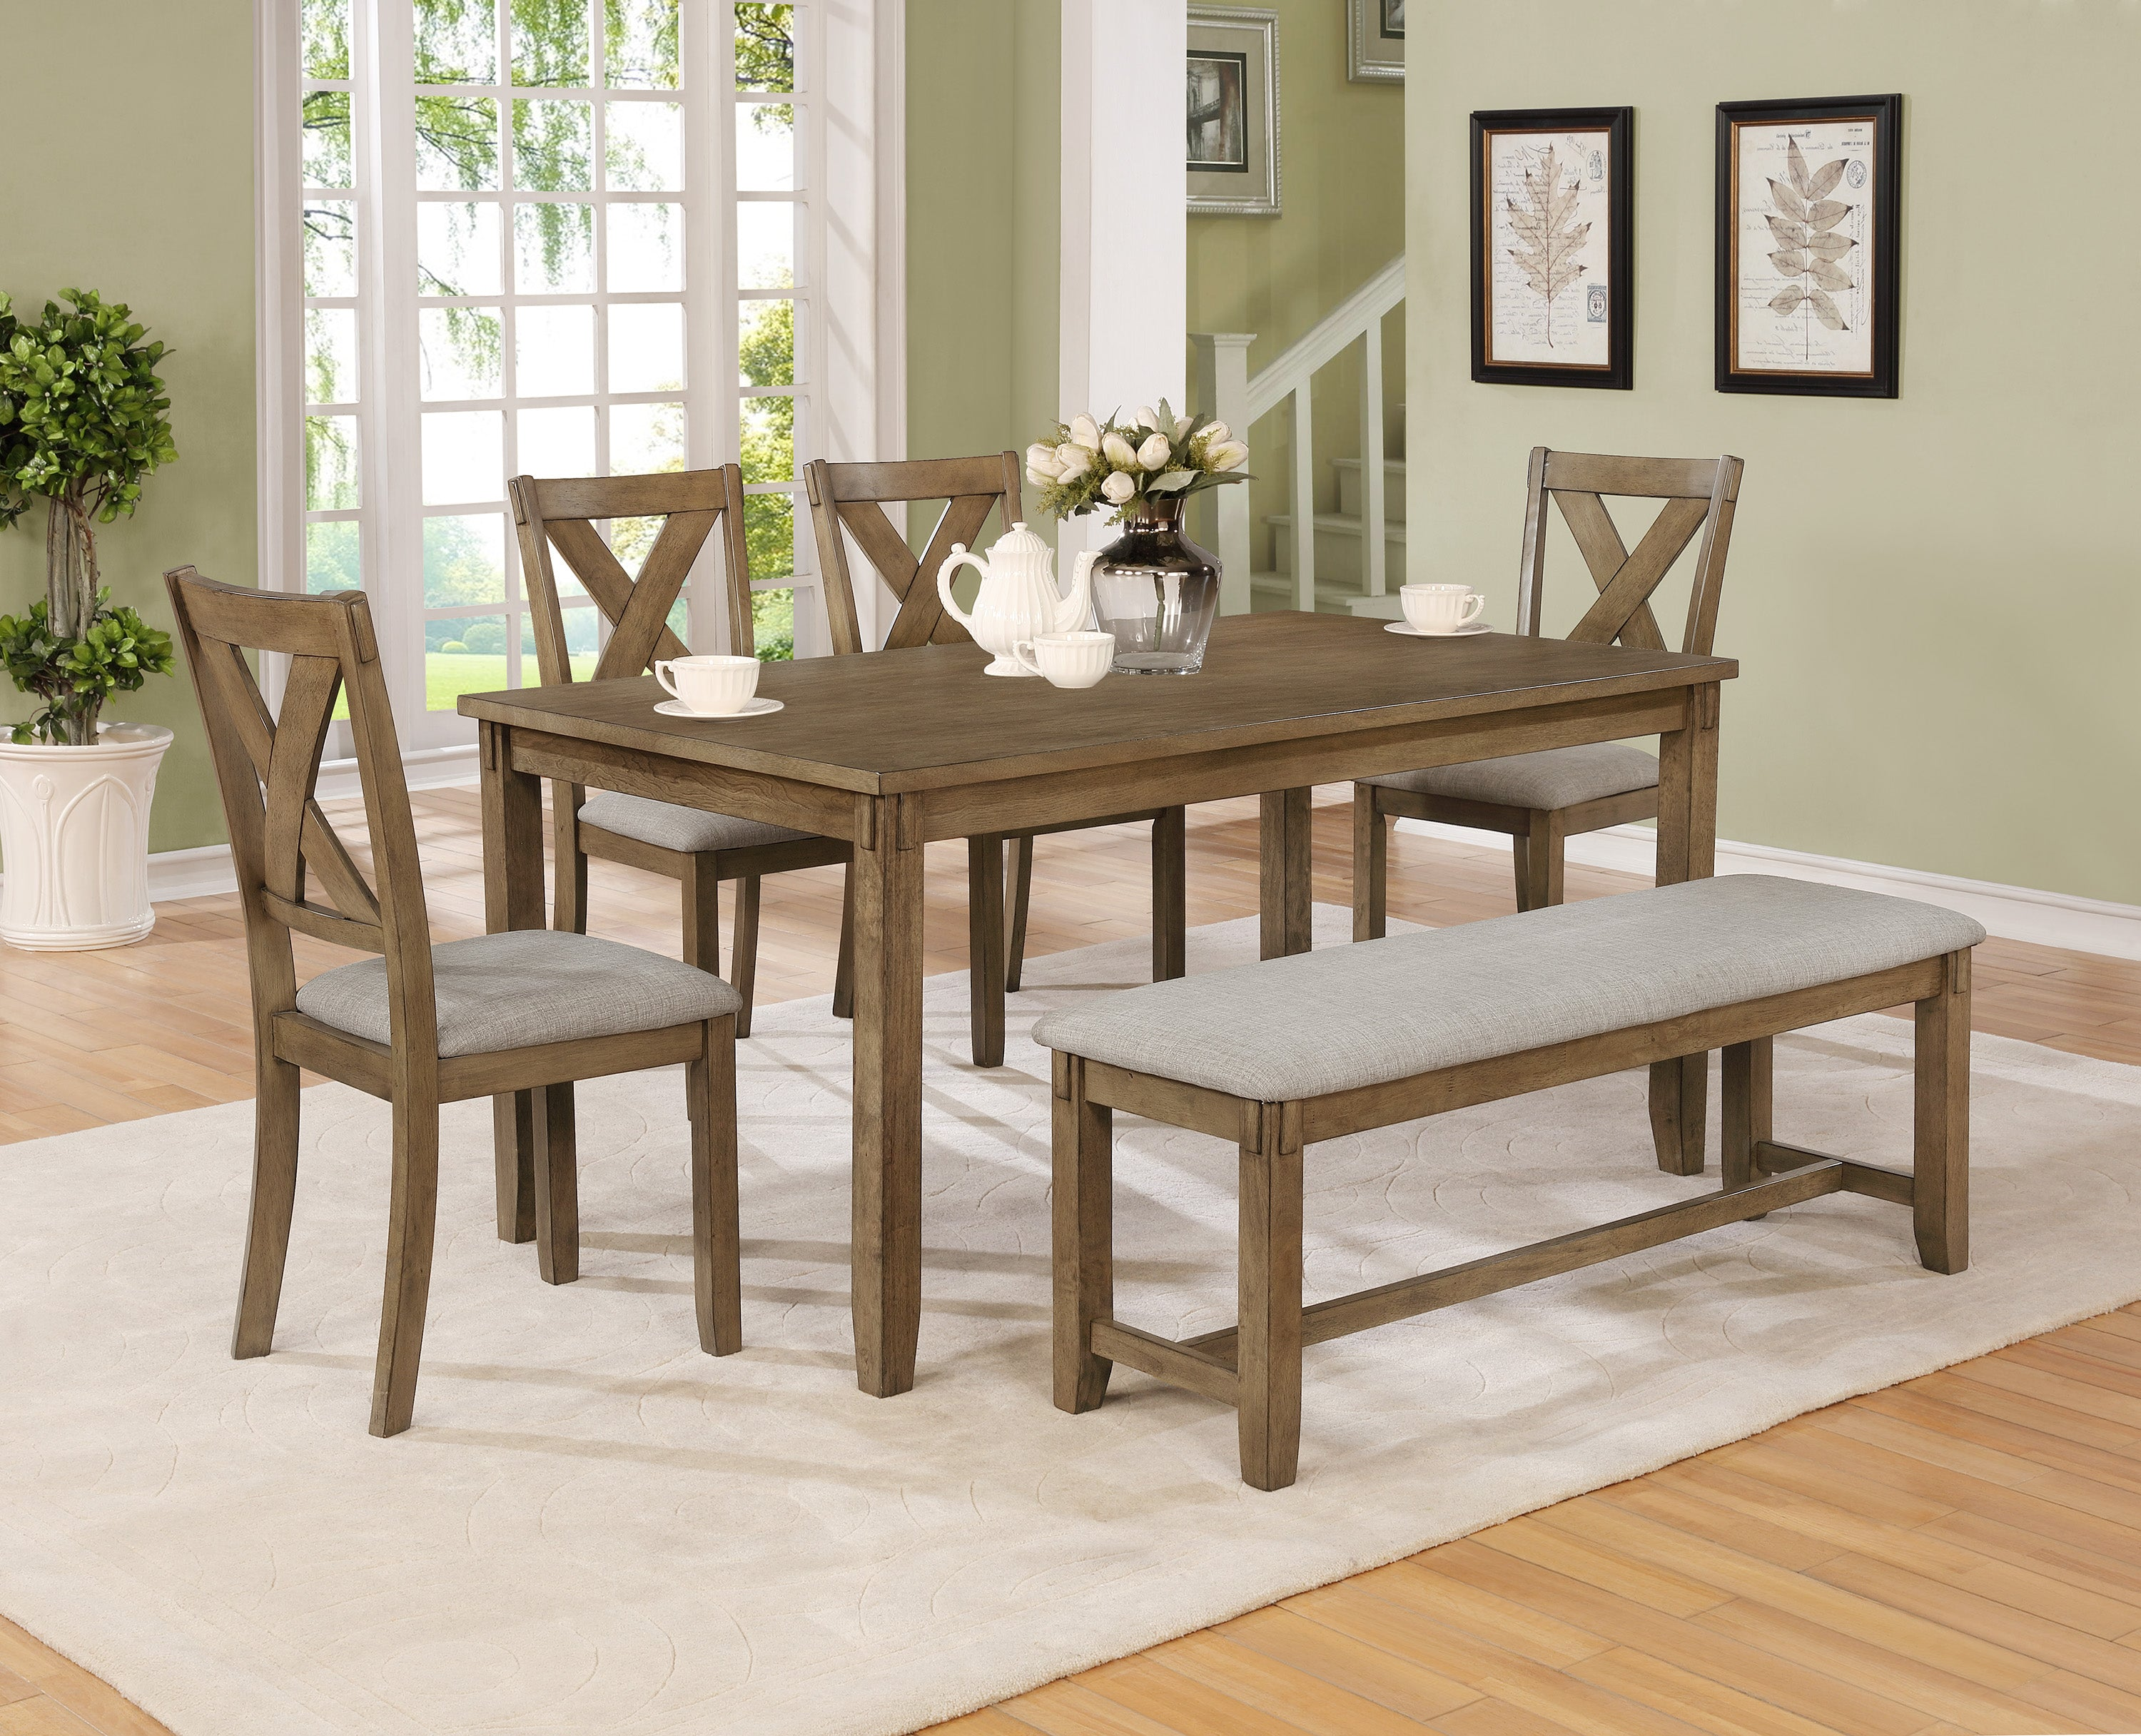 Clara Brown Dining Set with Bench